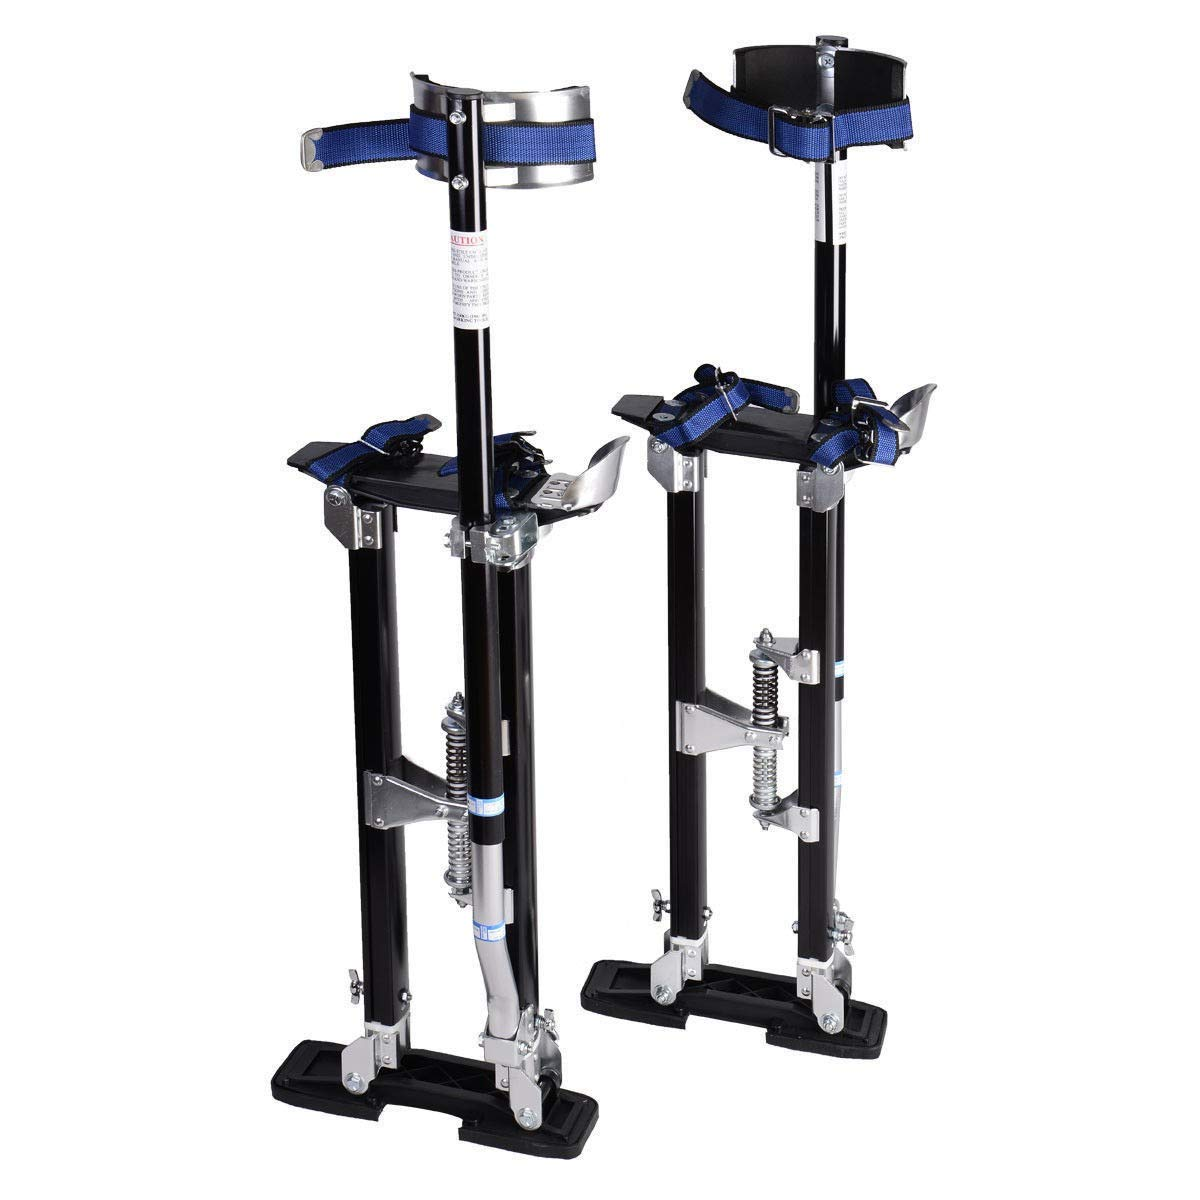 Brand New and Black 18''-30'' Drywall Aluminum Stilts, A Non-Rocking Frame with Overlapping, Industrial Strut Tubes is Paired with An Adjustable, Dual-Spring Flex-System - LeZhel Shop